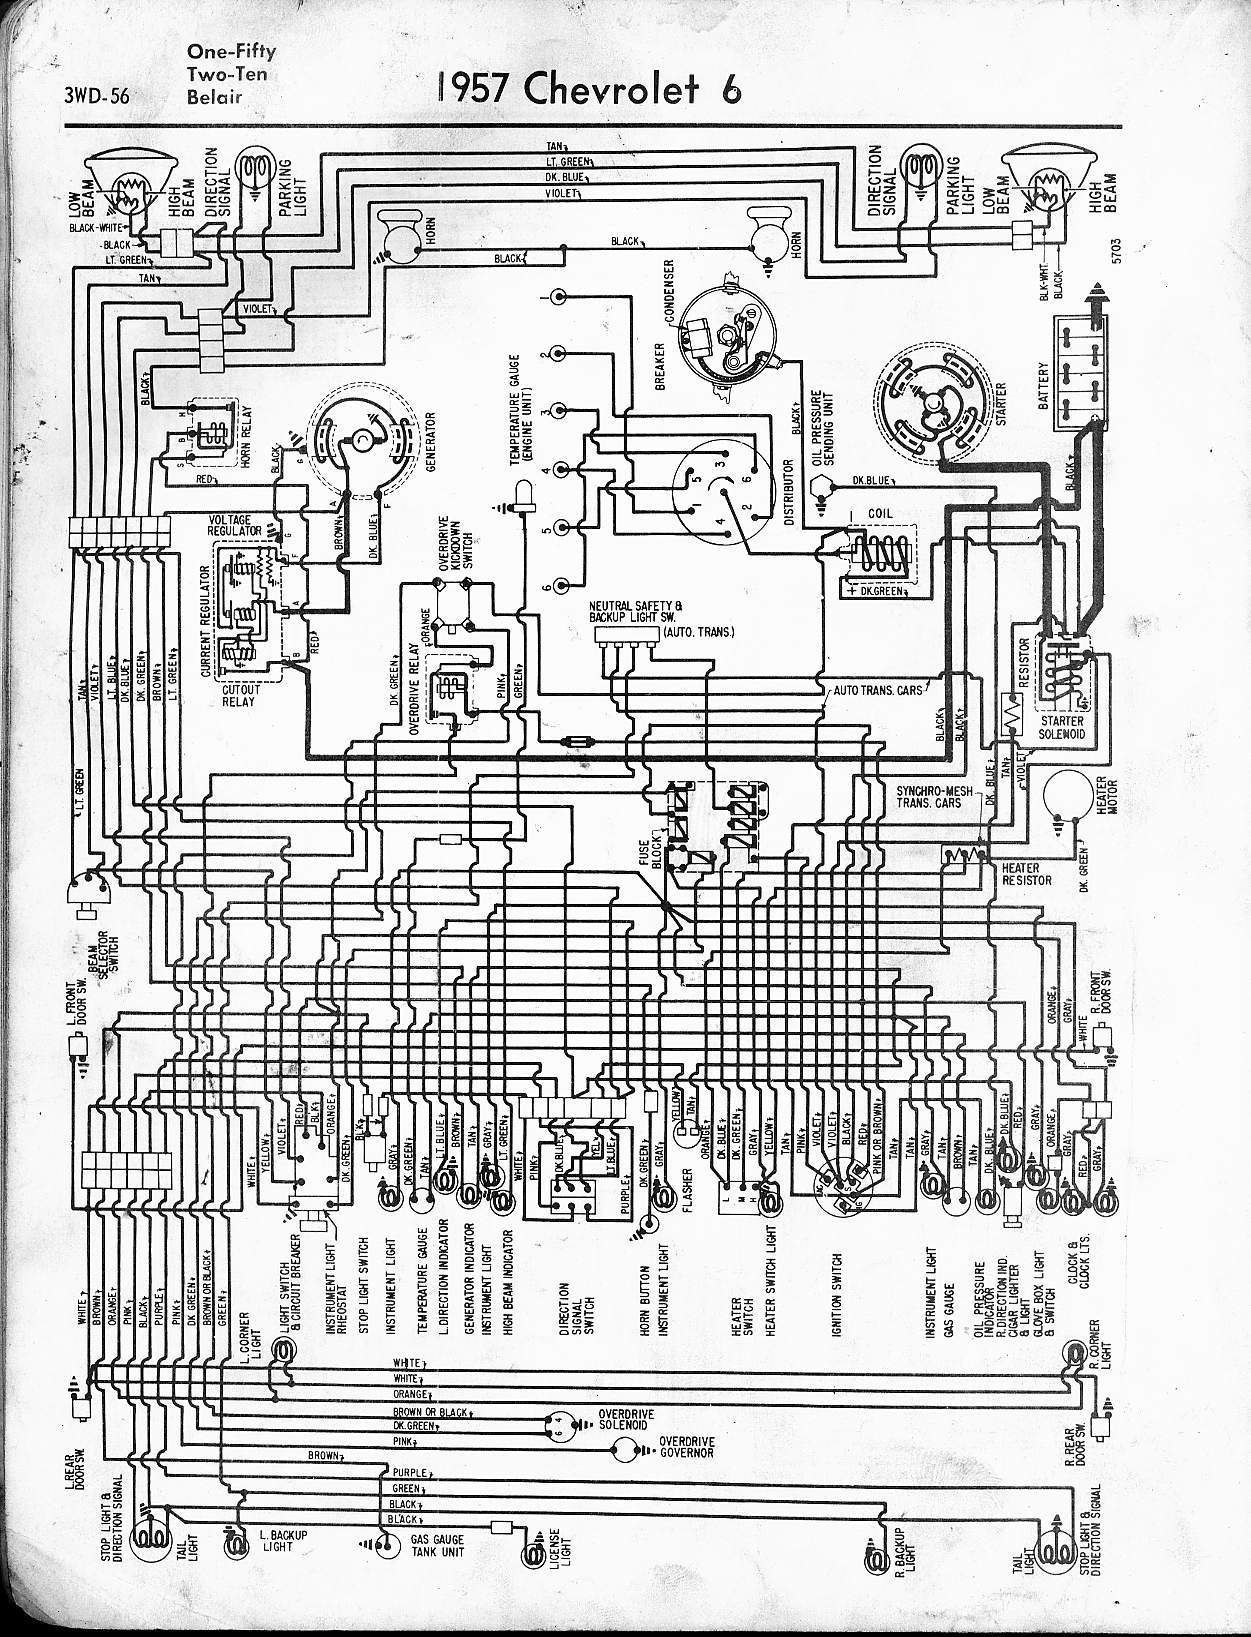 1955 ford fairlane wiring diagram ruger 10 22 trigger assembly radio diagram1955 library57 65 chevy diagrams 1960